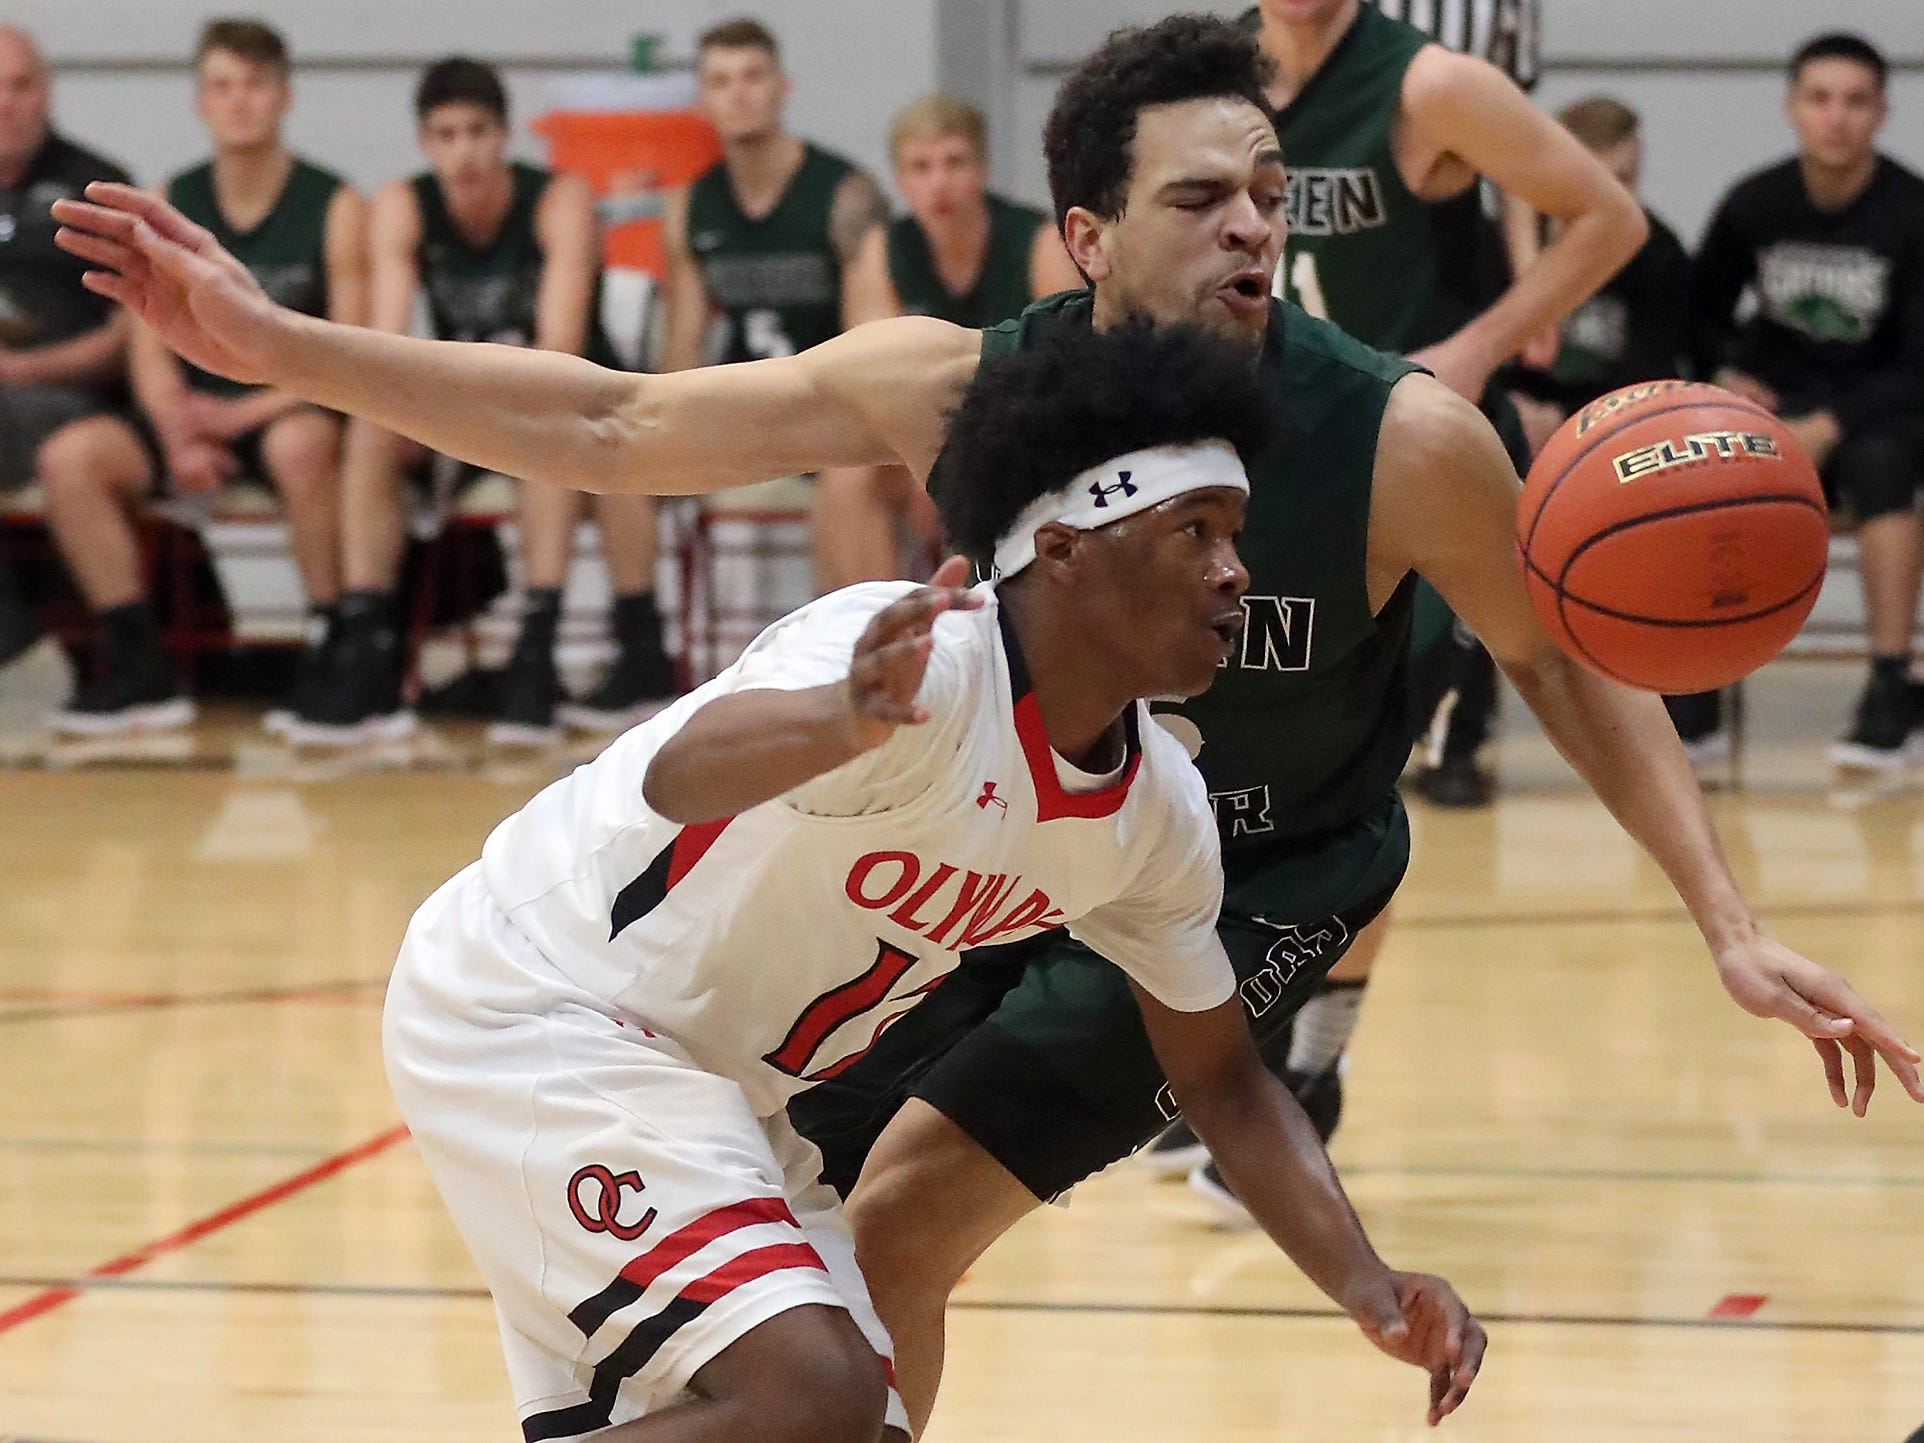 The ball gets out of the control of OC's Markel Banks (front) while Green River's Chayse Mims puts on the pressure at Olympic College in Bremerton on Tuesday, December 11, 2018.